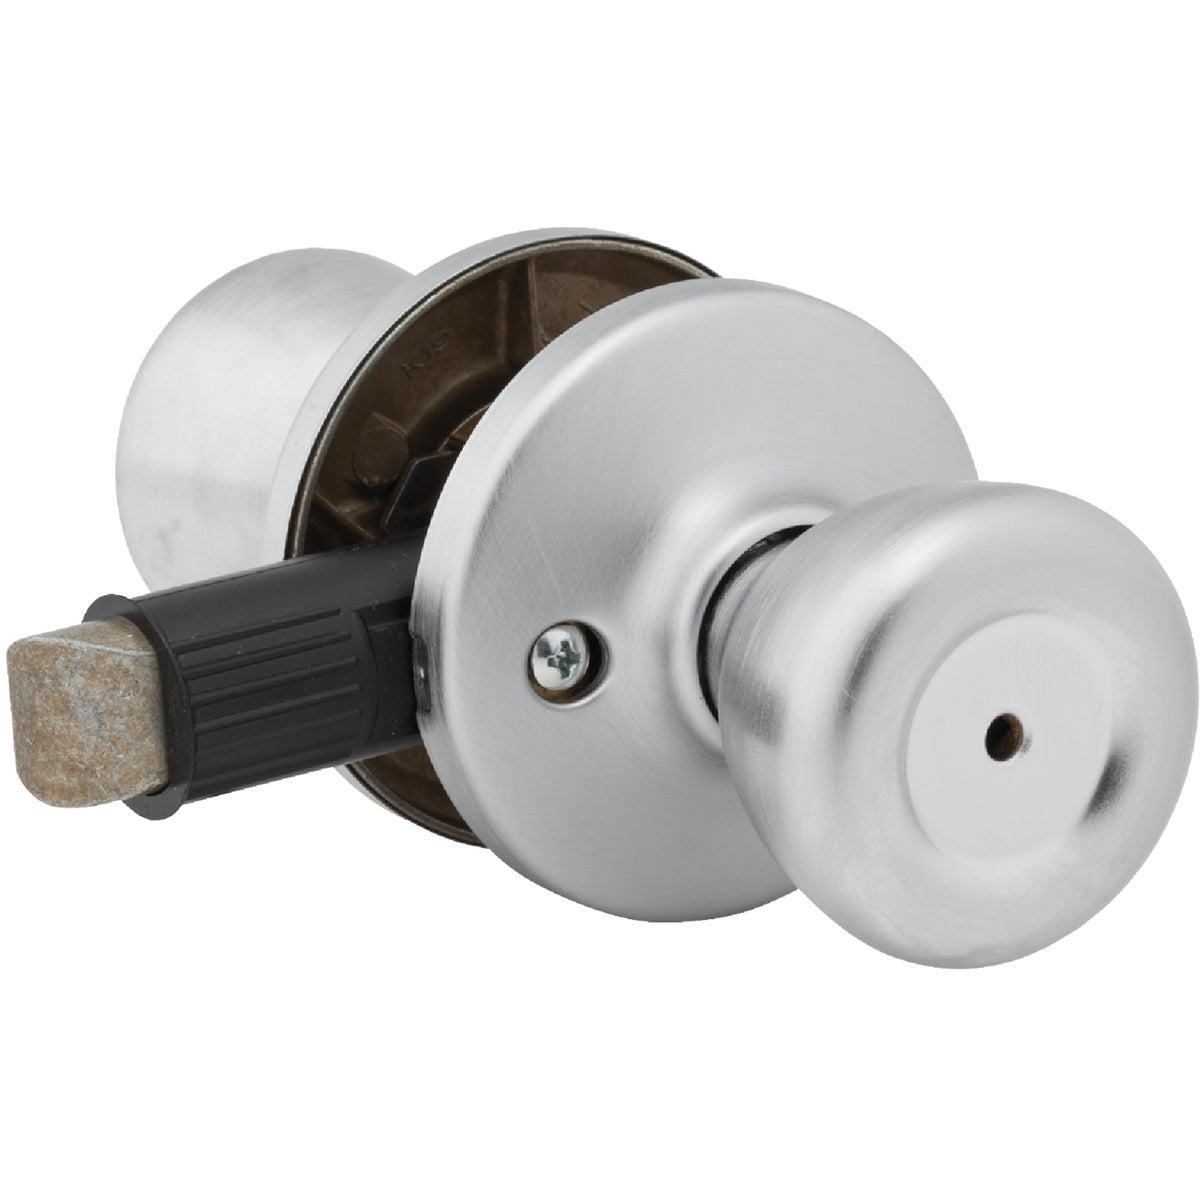 SC MOBILE HOME PRIV LOCK - 300M 26D CP by Kwikset